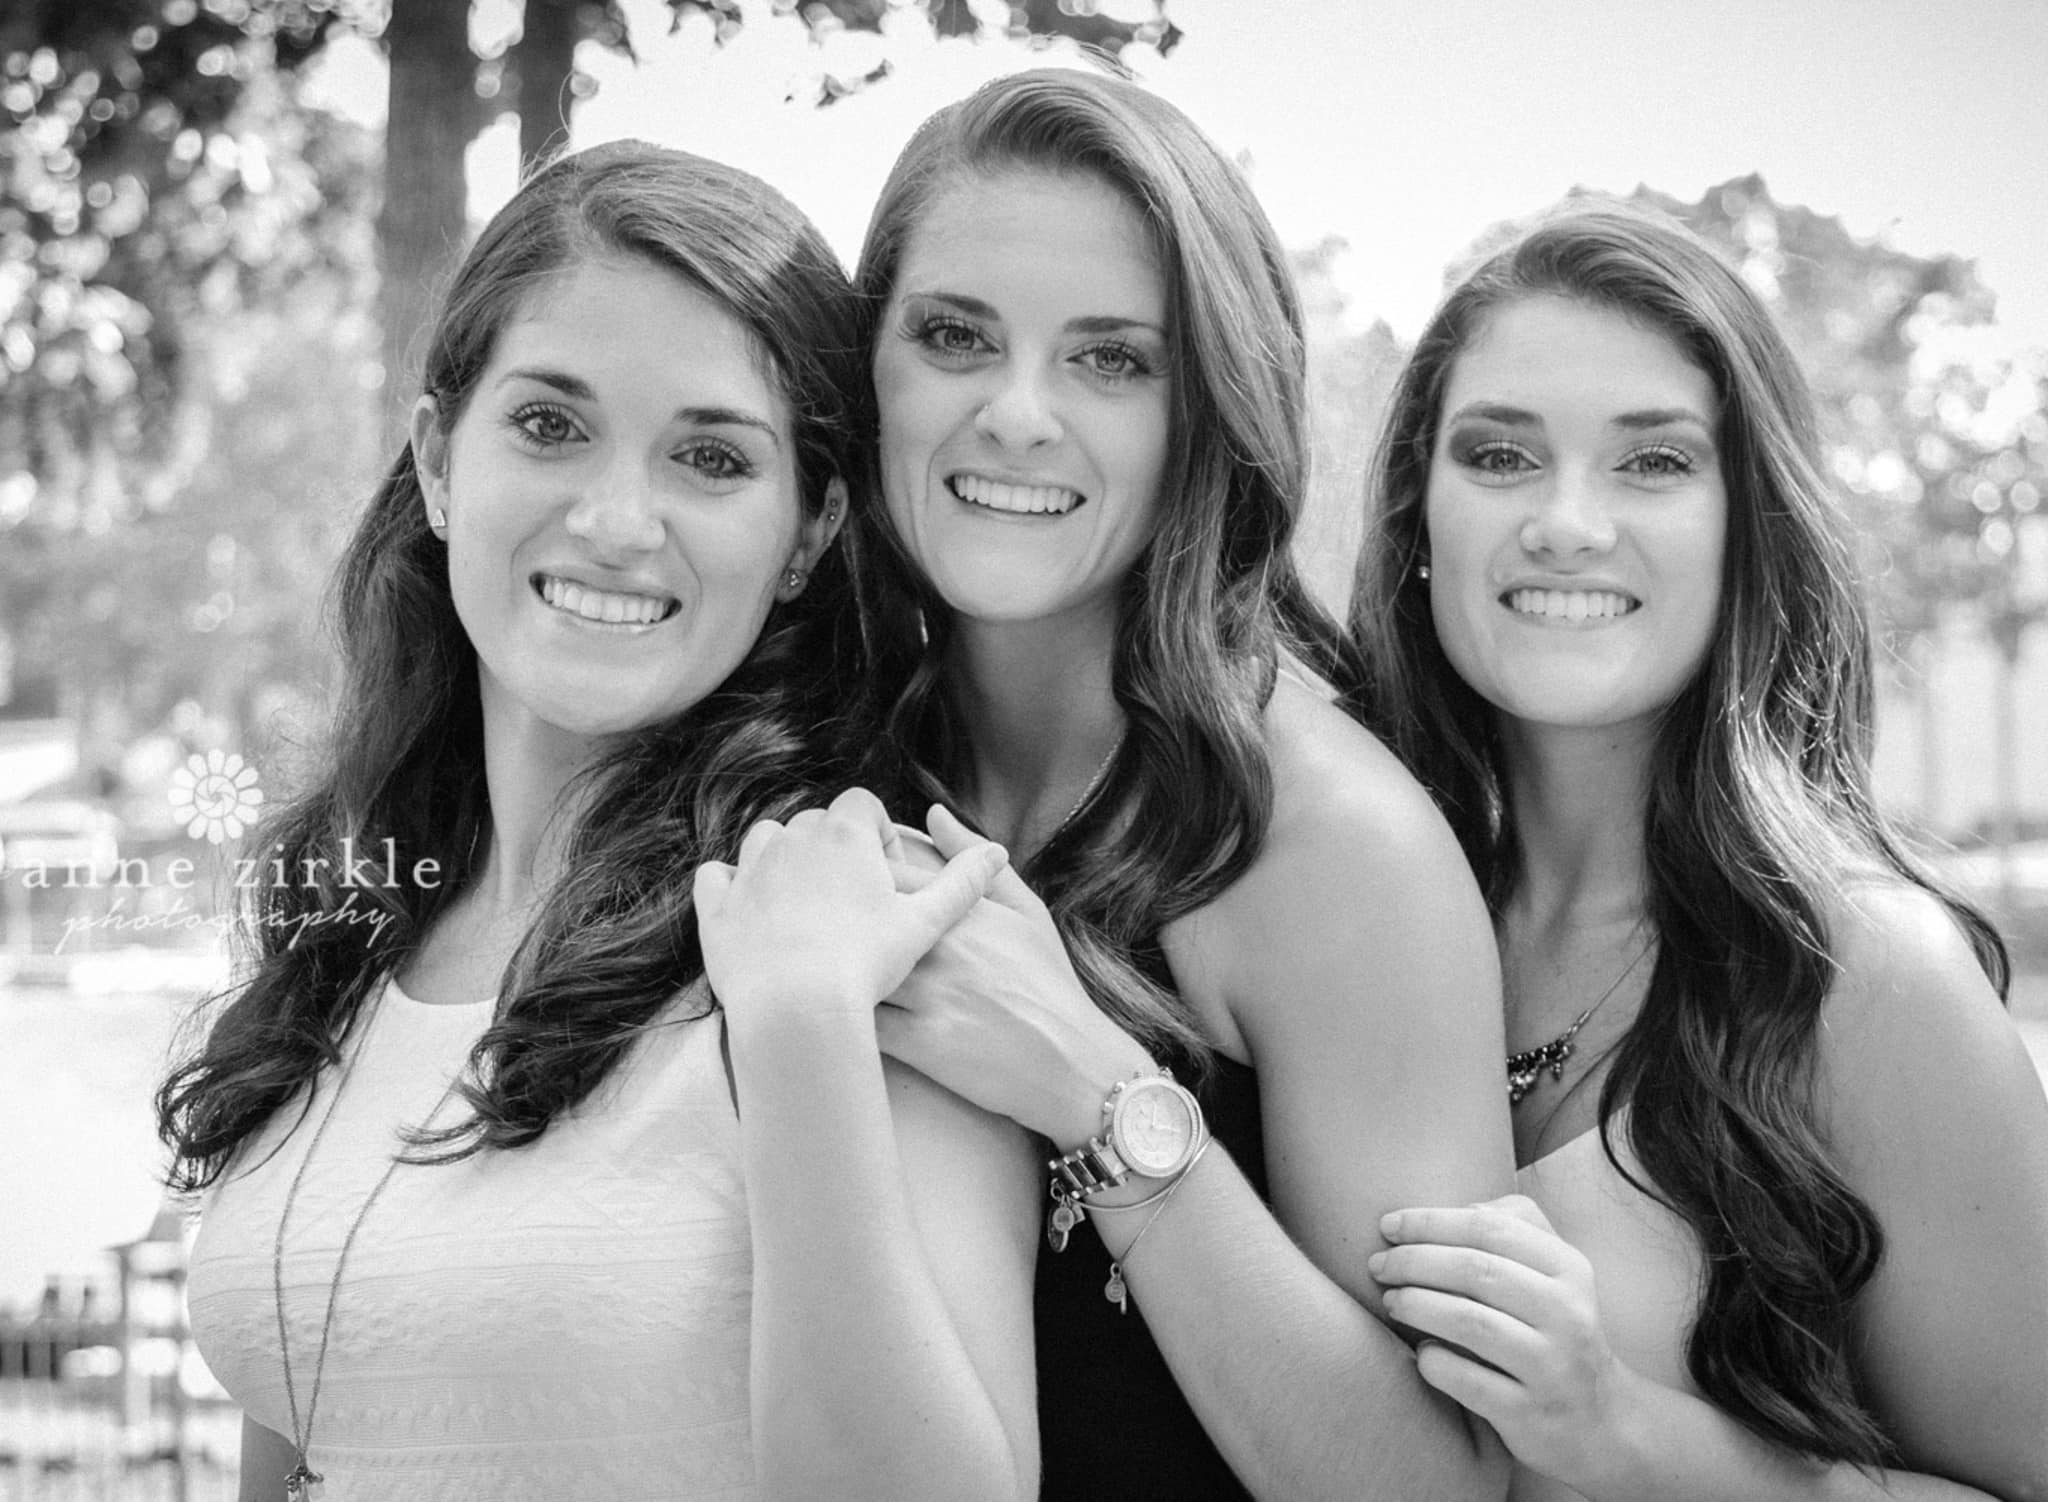 three teen sisters #mooresville #northcarolina #davidson #lakenorman #southiredell #pinelakeprep #highschool #highschoolsenior #highschoolseniors #seniors